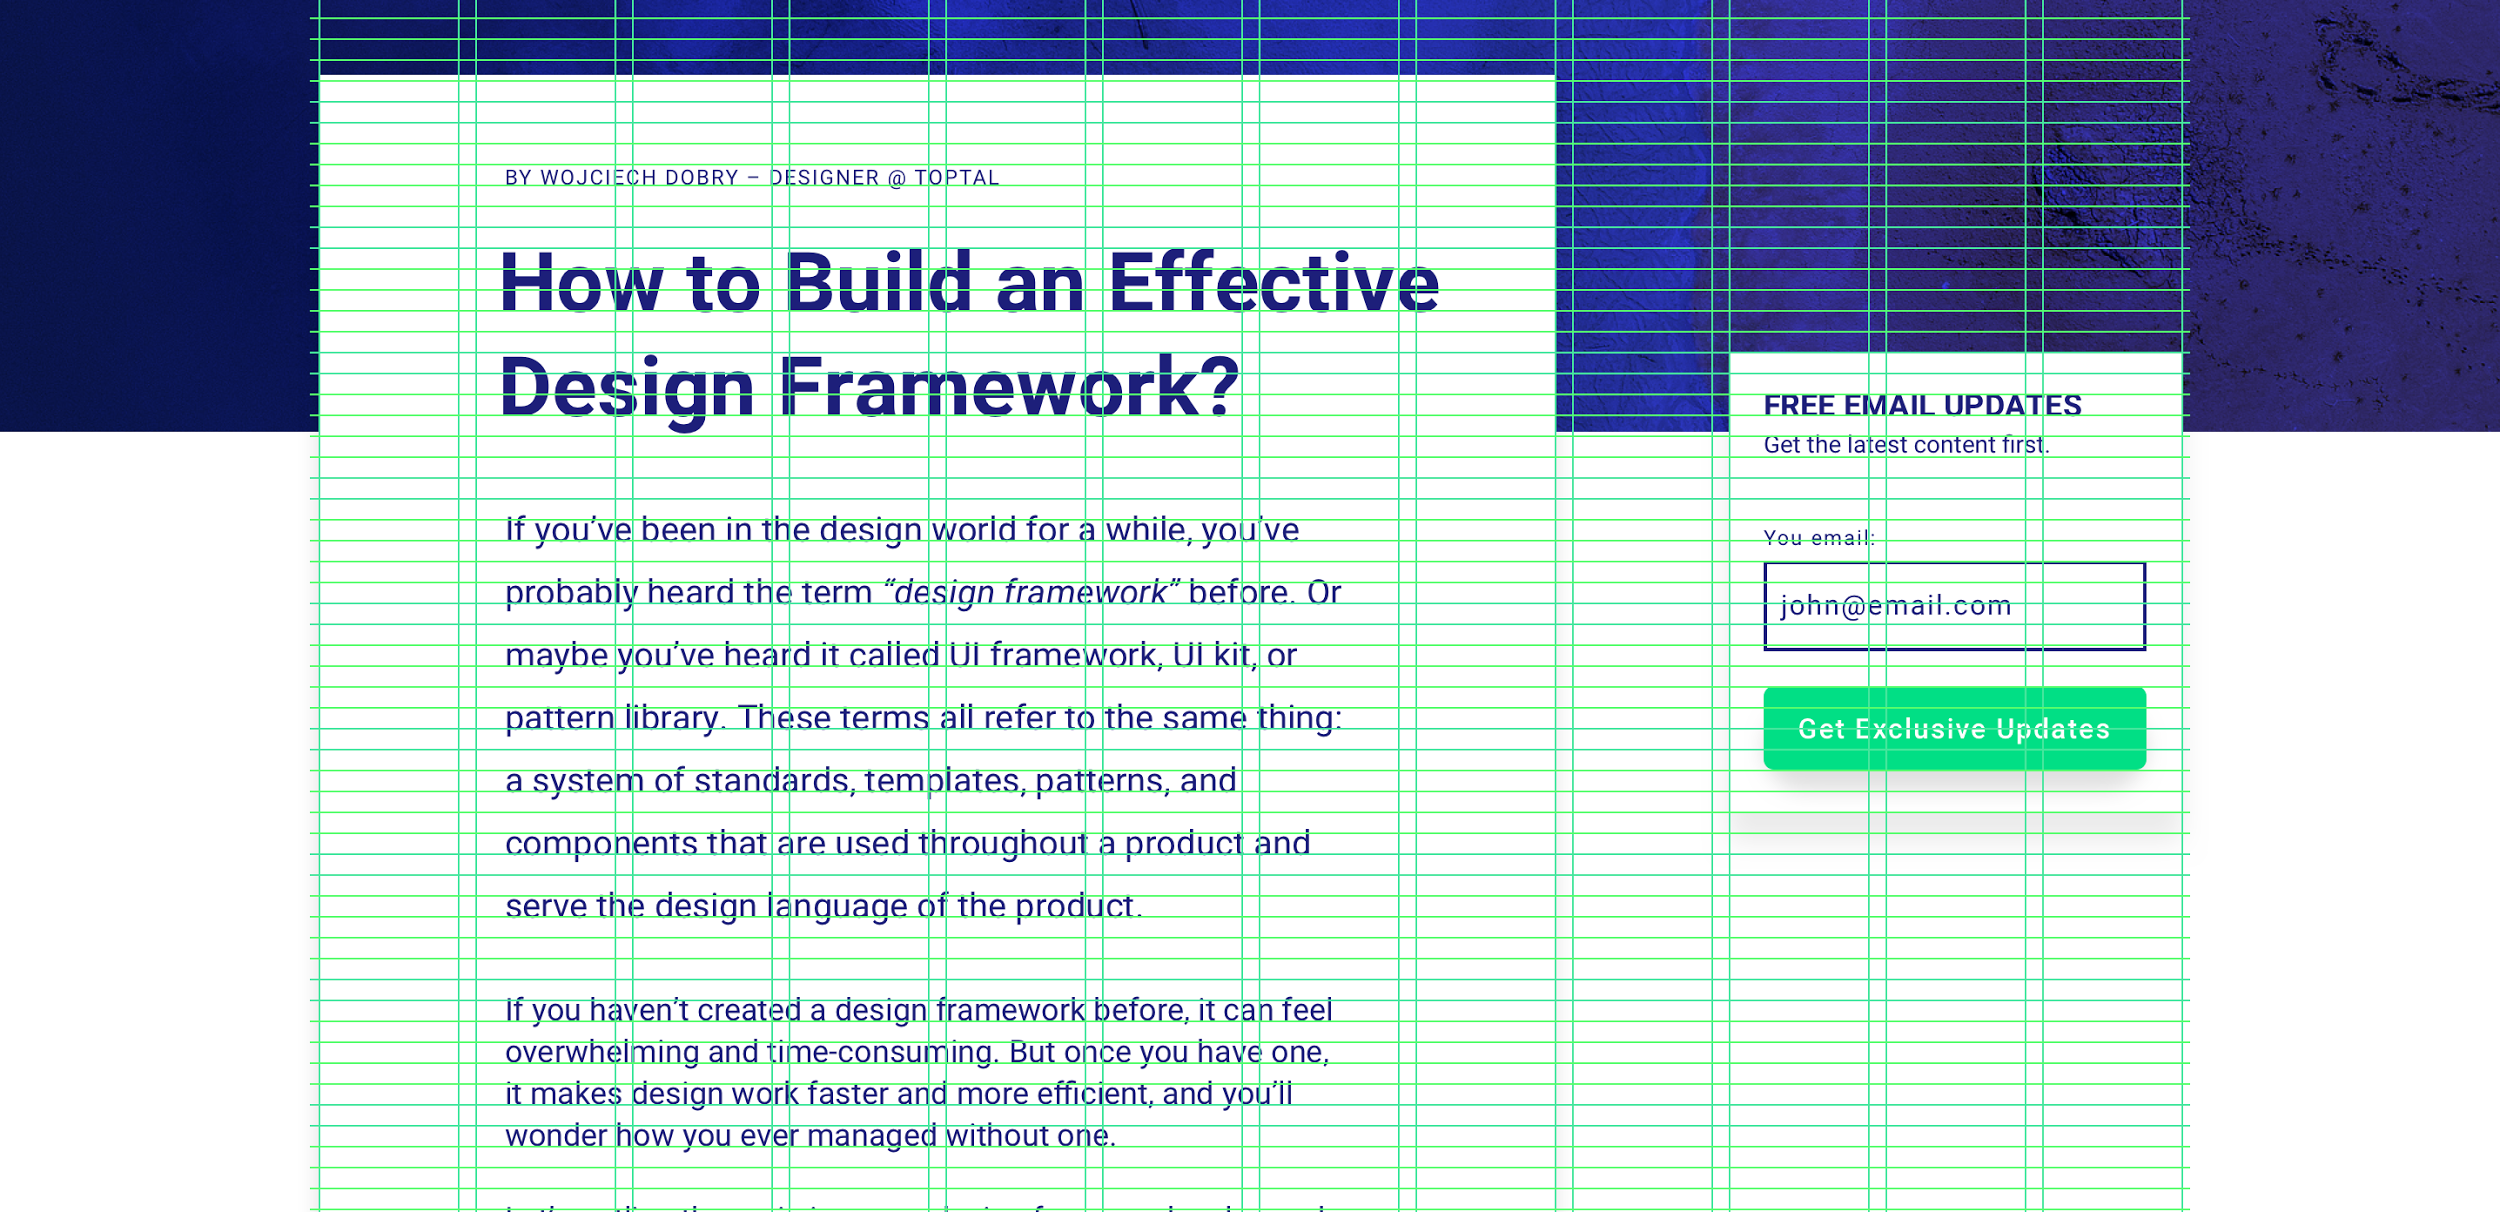 Vertical and horizontal grid in design framework